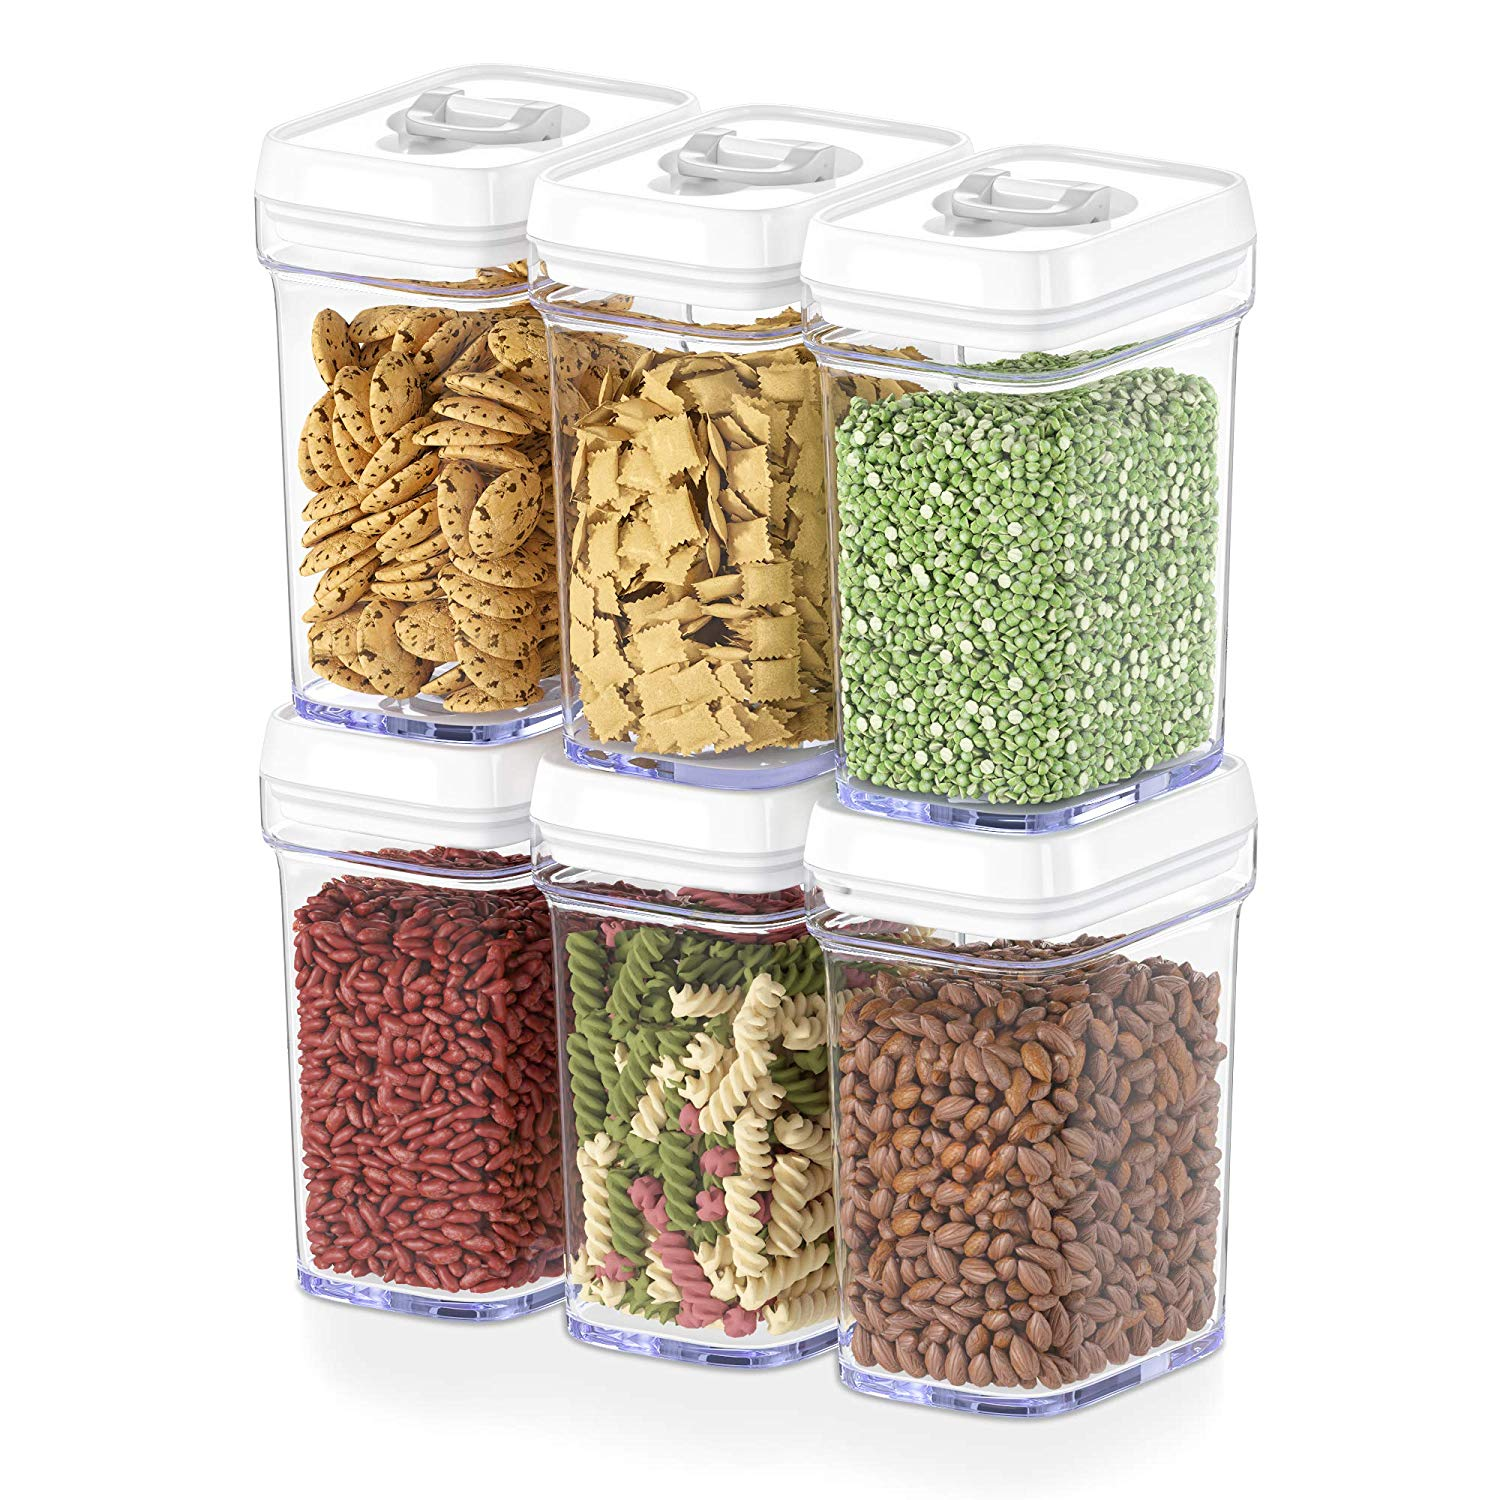 Snapware 17 Cup Rectangle Food Storage Container w/ Fliptop Lid # 1098425